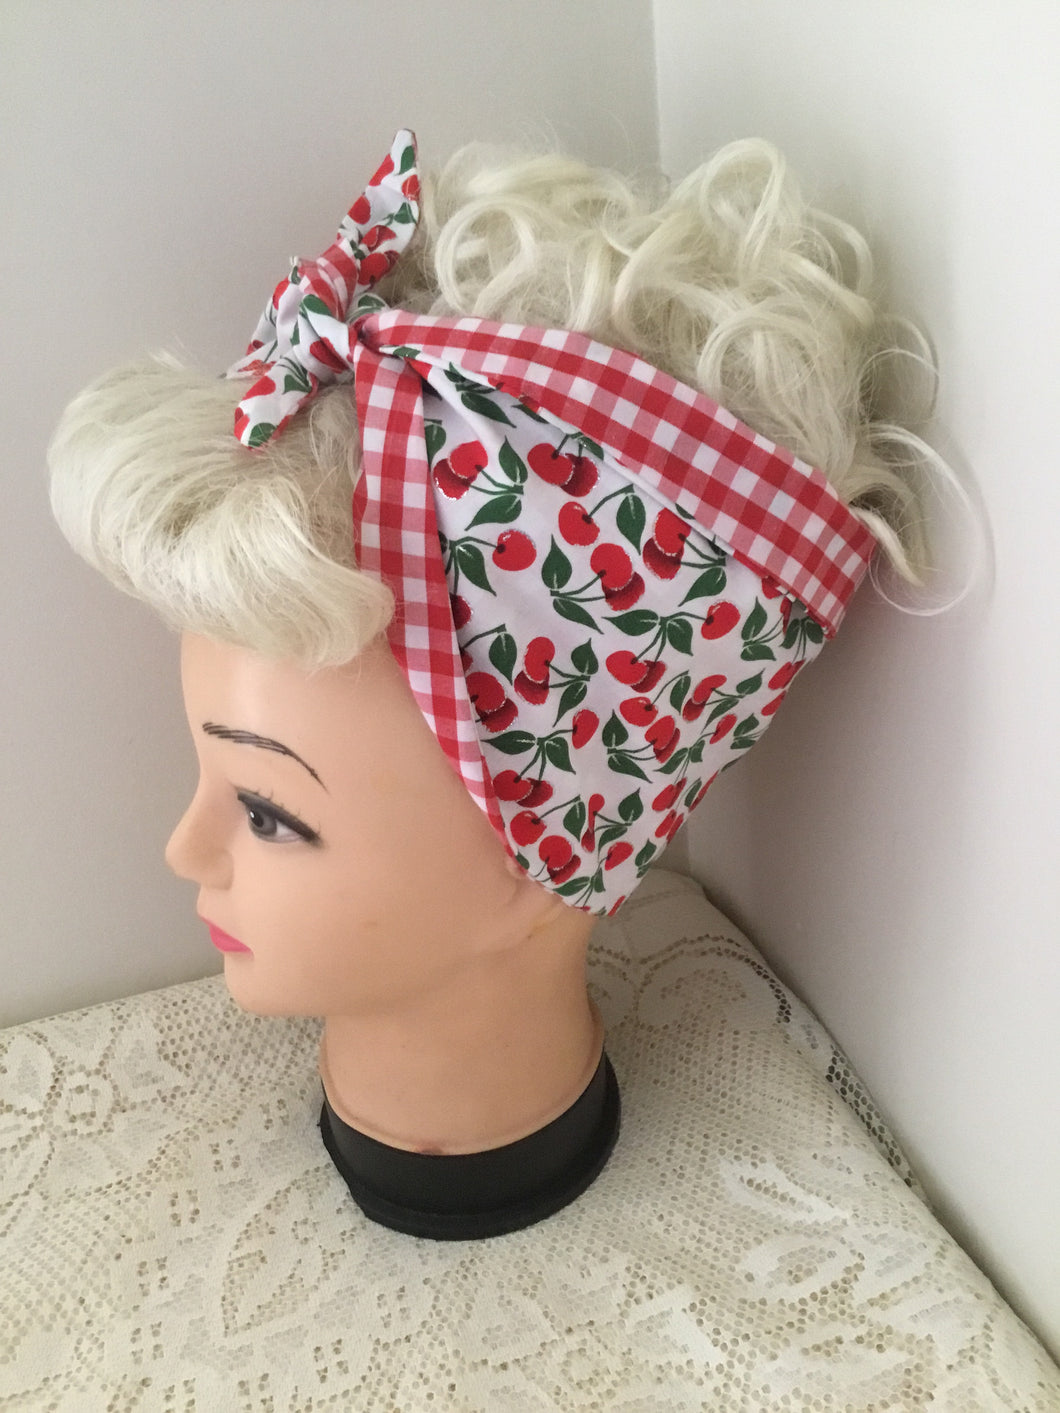 WHITE CHERRY - vintage inspired do-rags